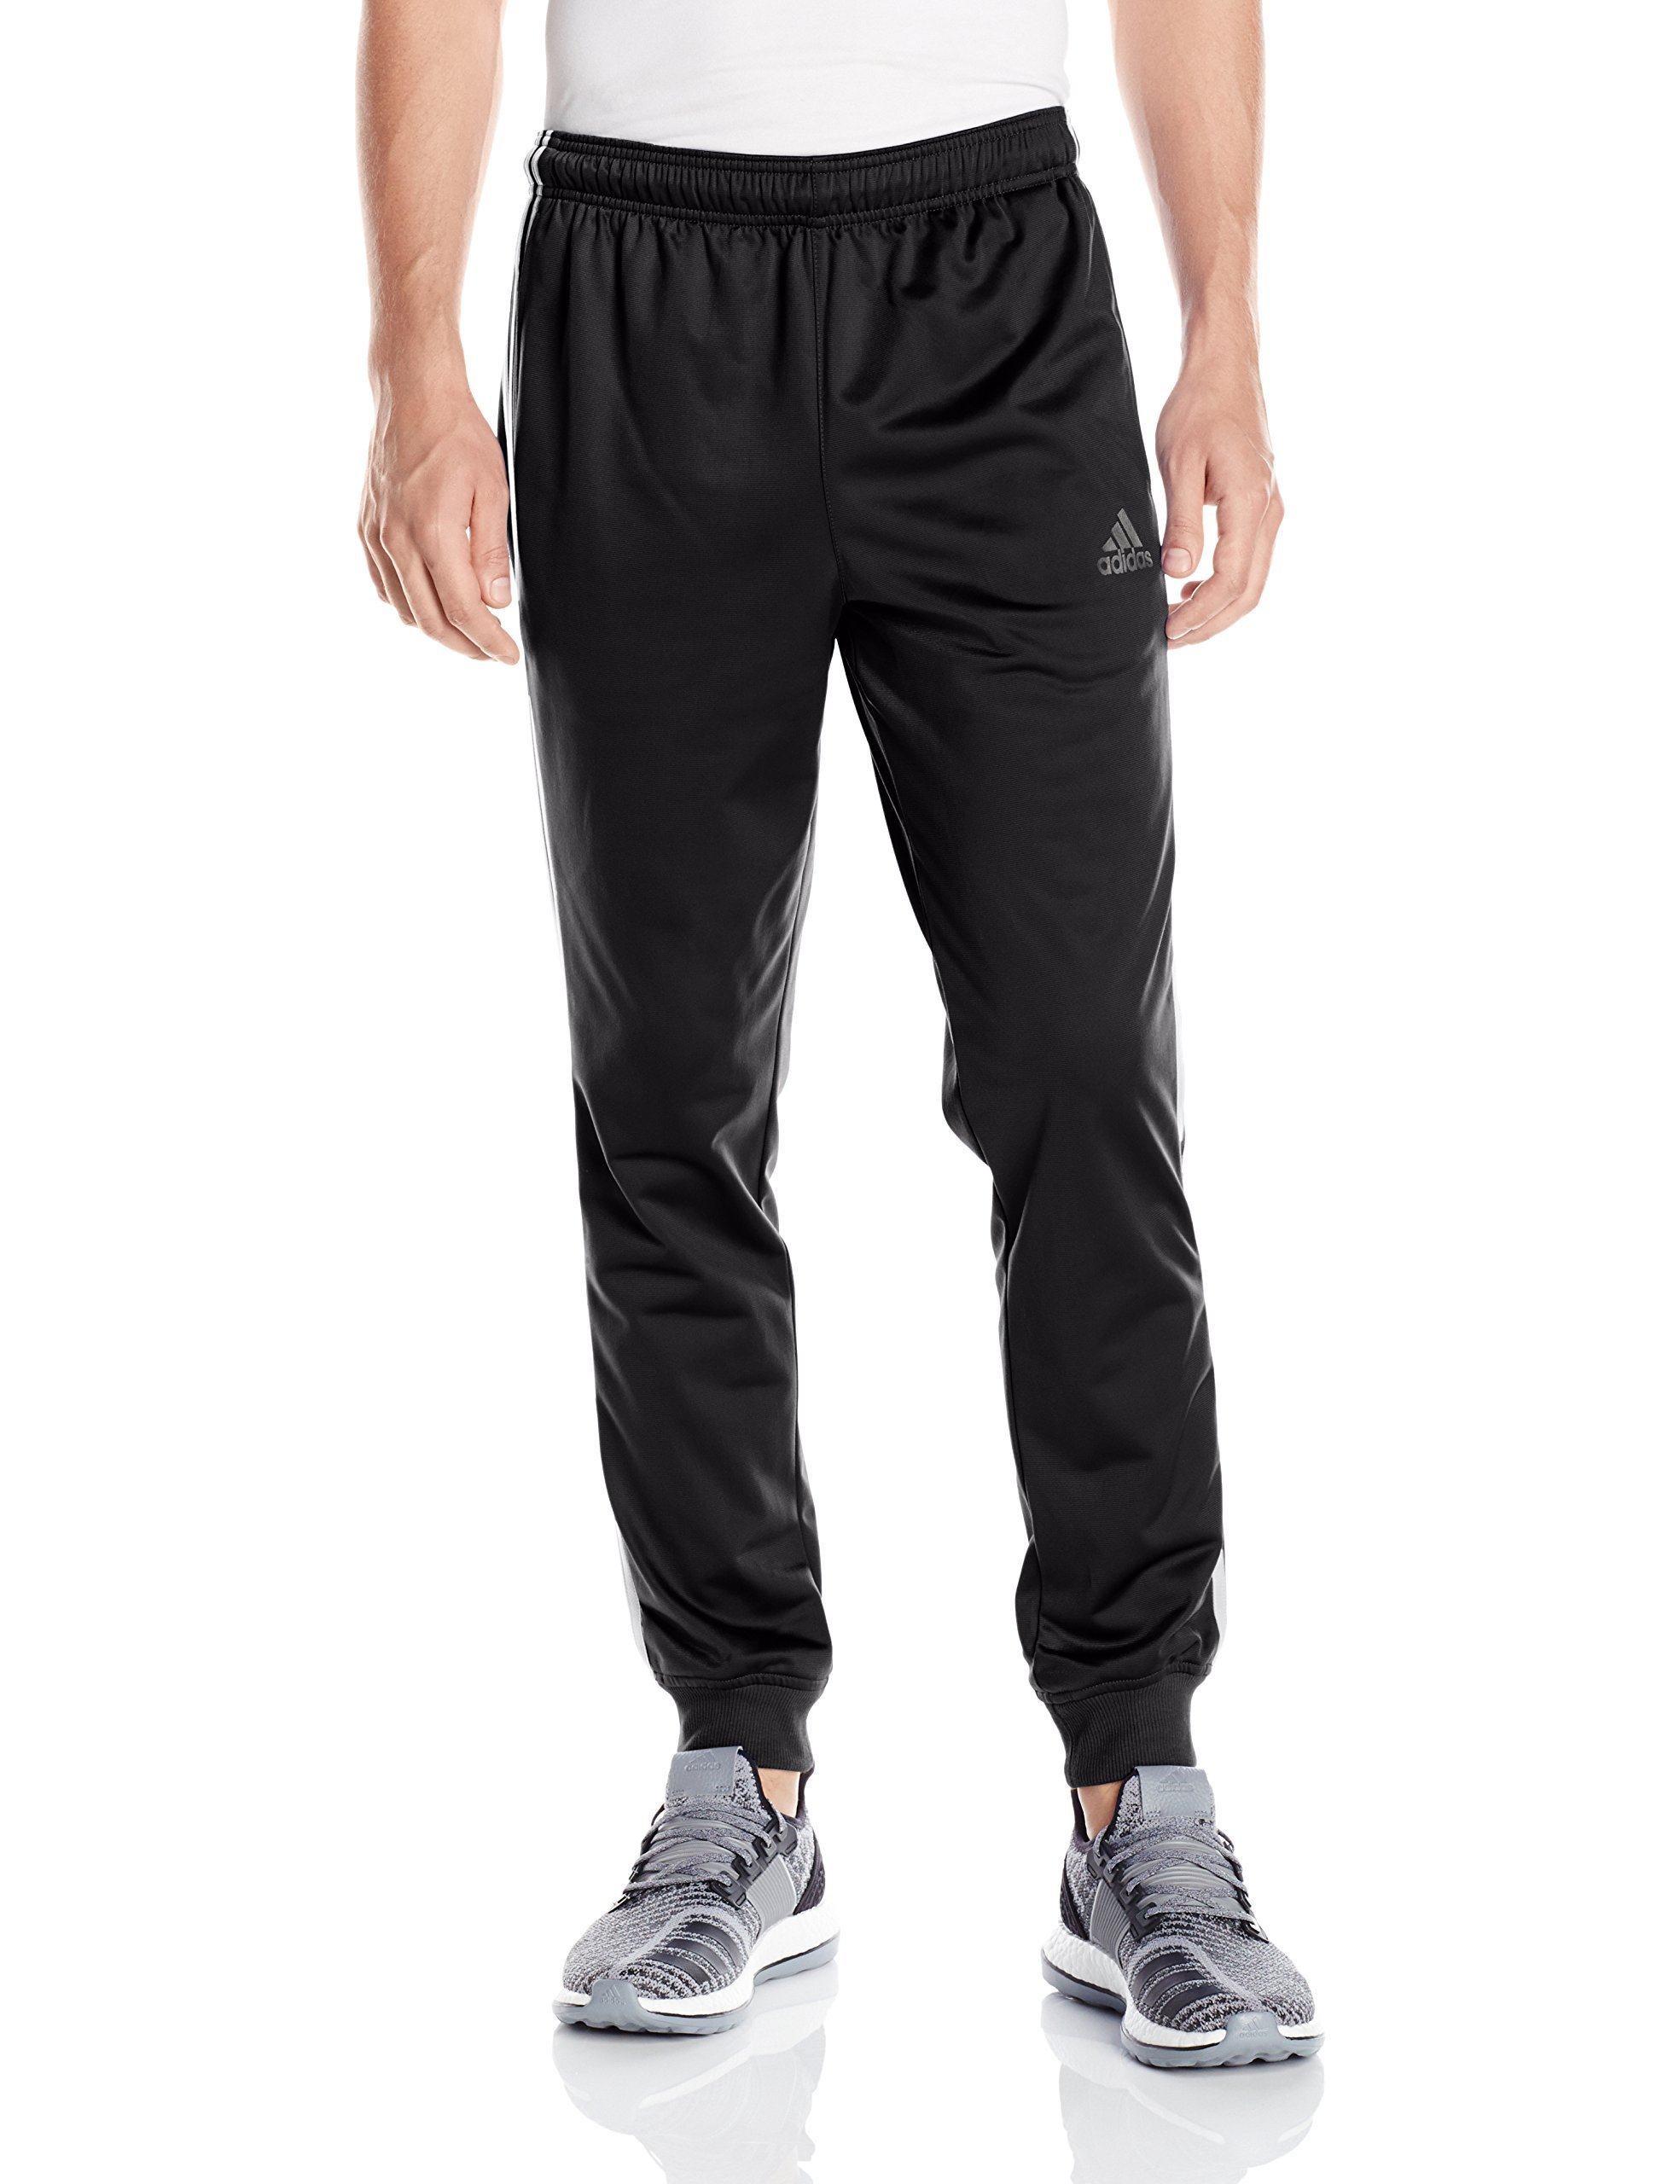 adidas Men's Essentials Tricot Jogger Pants, Black/White, X-Large by adidas